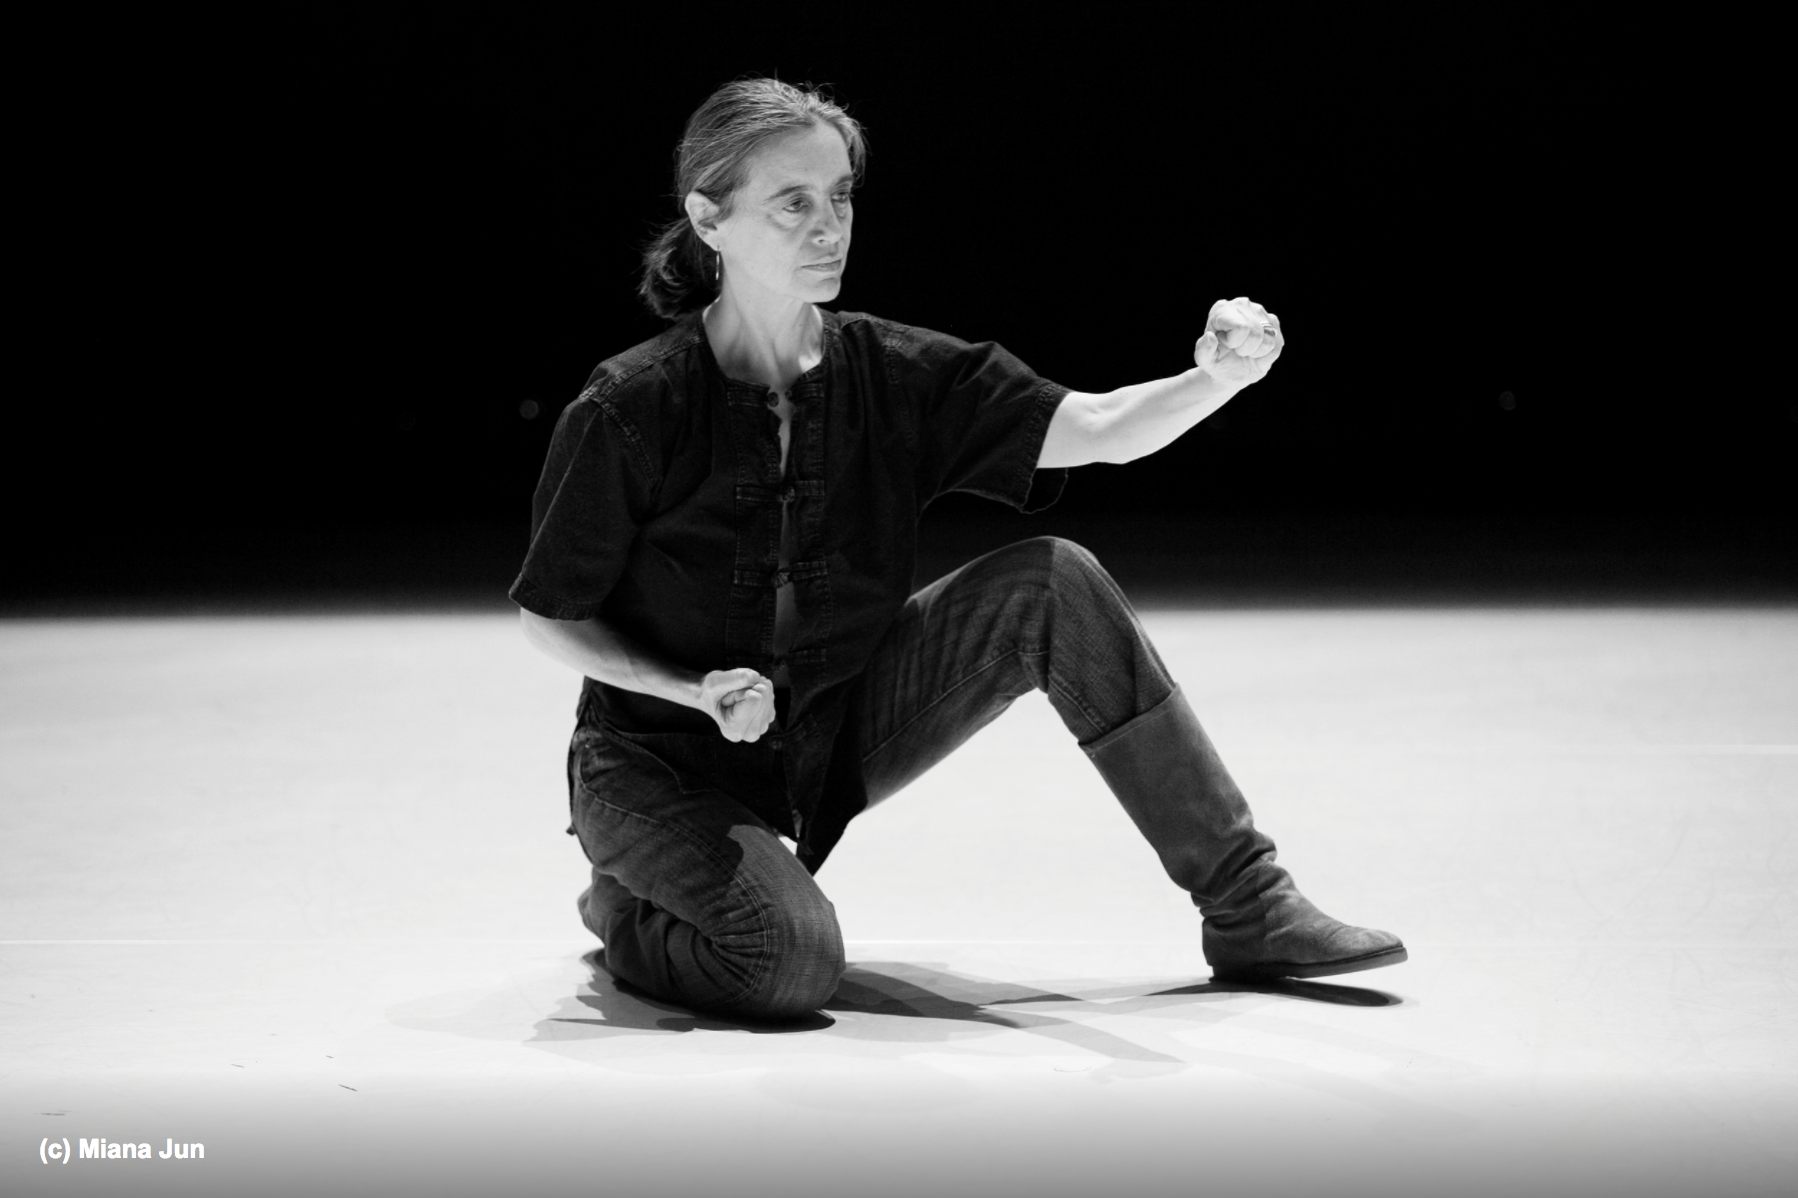 Daria Fain - Daria Faïn is an acclaimed New York director and choreographer originally from Antibes, France. Her work fuses her European cultural background with three decades of practice in Asian philosophies of the body, American dance training as well ancient Greek theater. From this, Faïn has developed a unique movement and performance approach.She has been a mentor, teacher, and spiritual guide for Elia Mrak for the past 4 years.